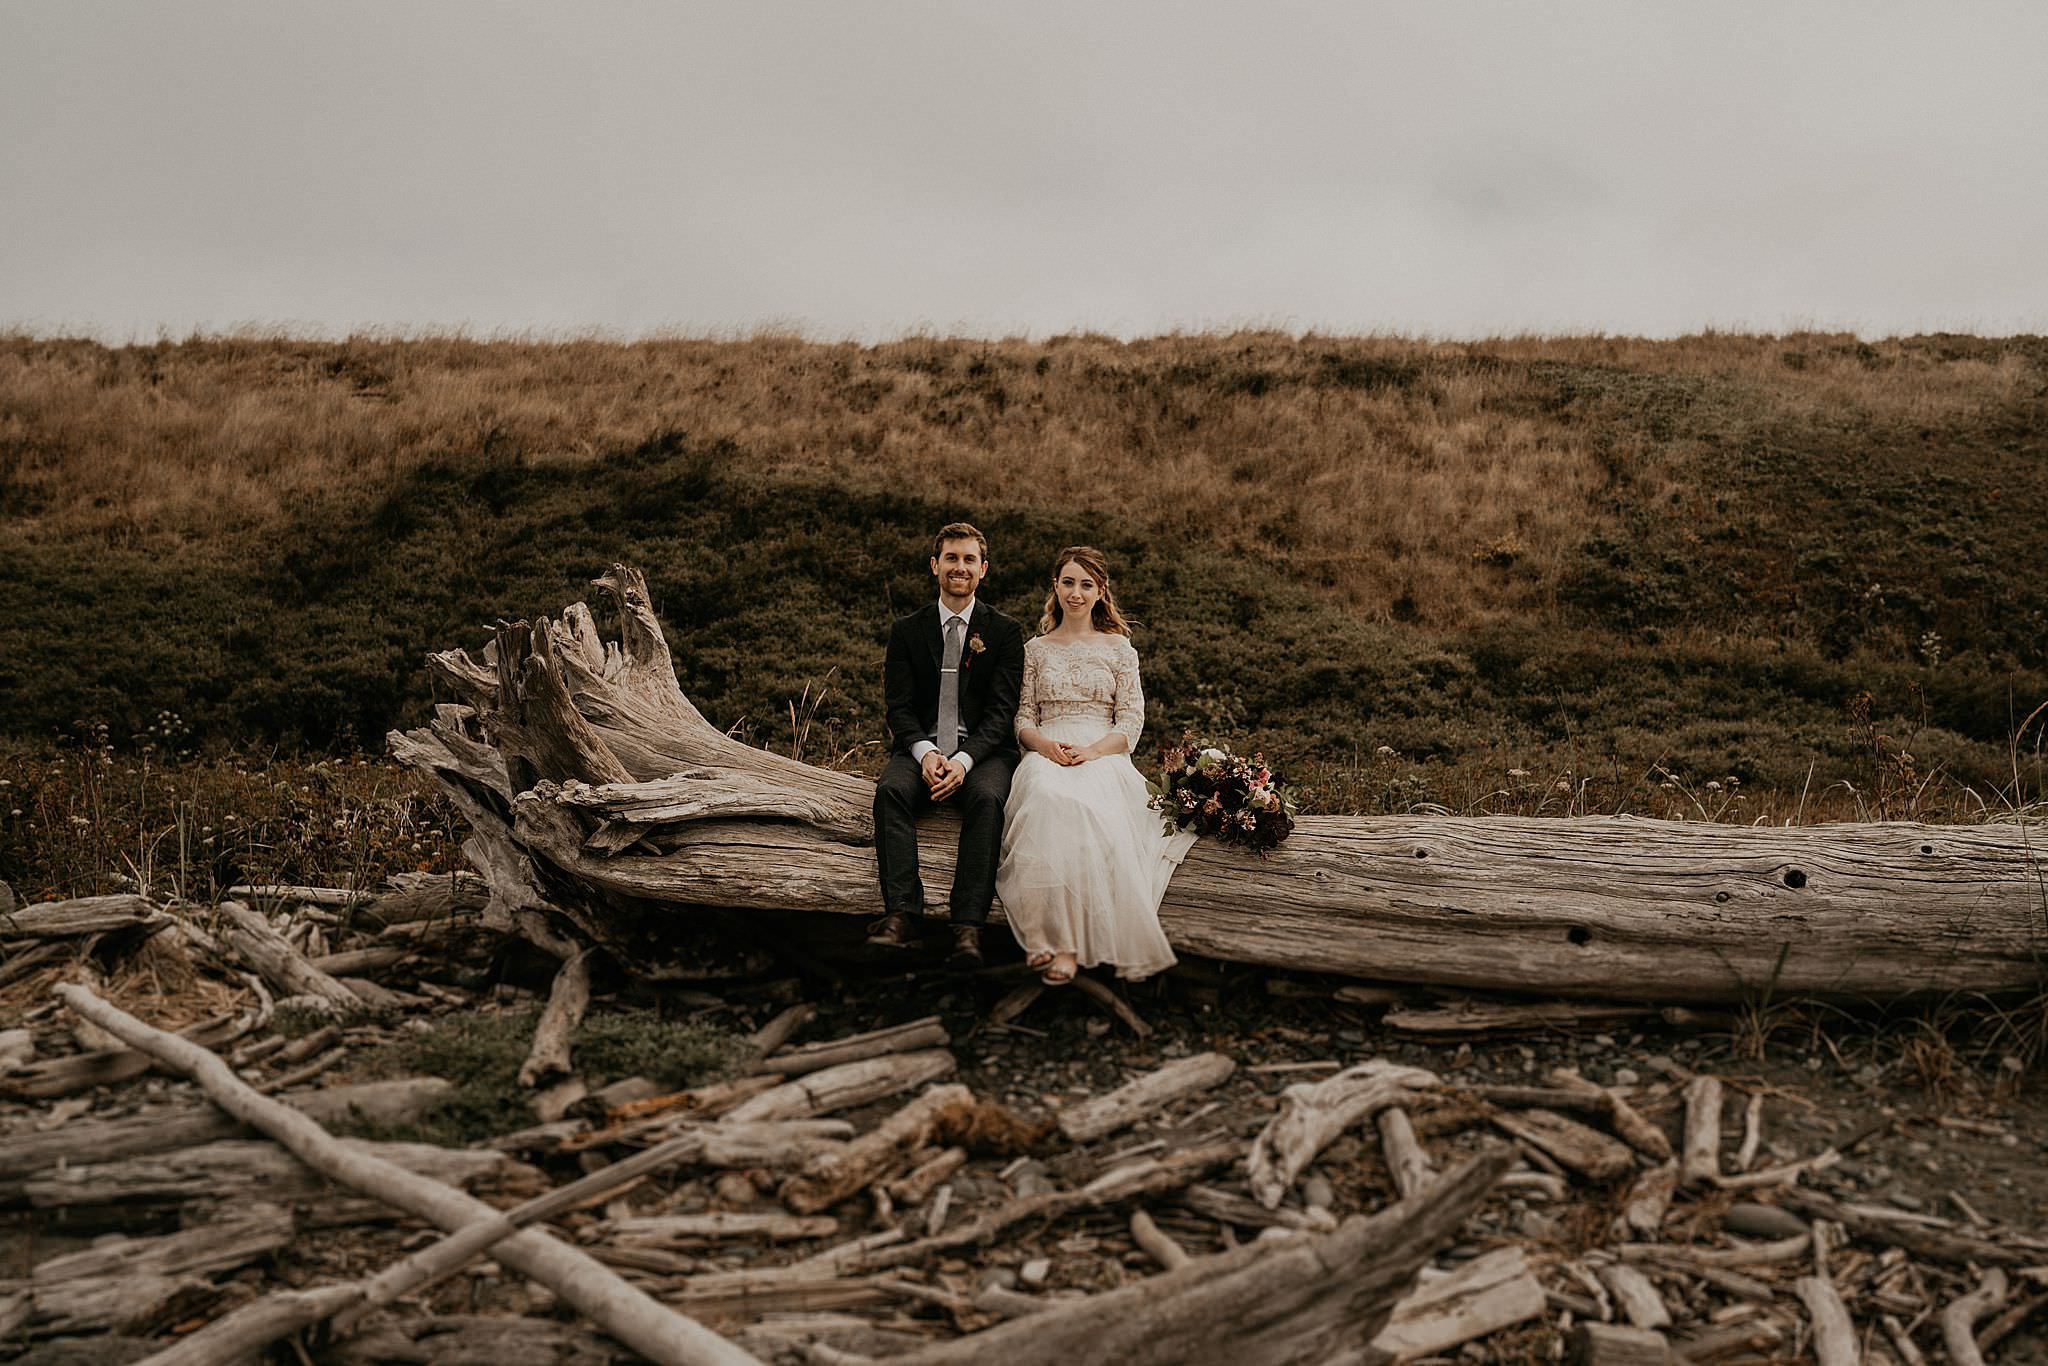 Newly weds celebrating their intimate elopement on Whidbey Island near deception pass